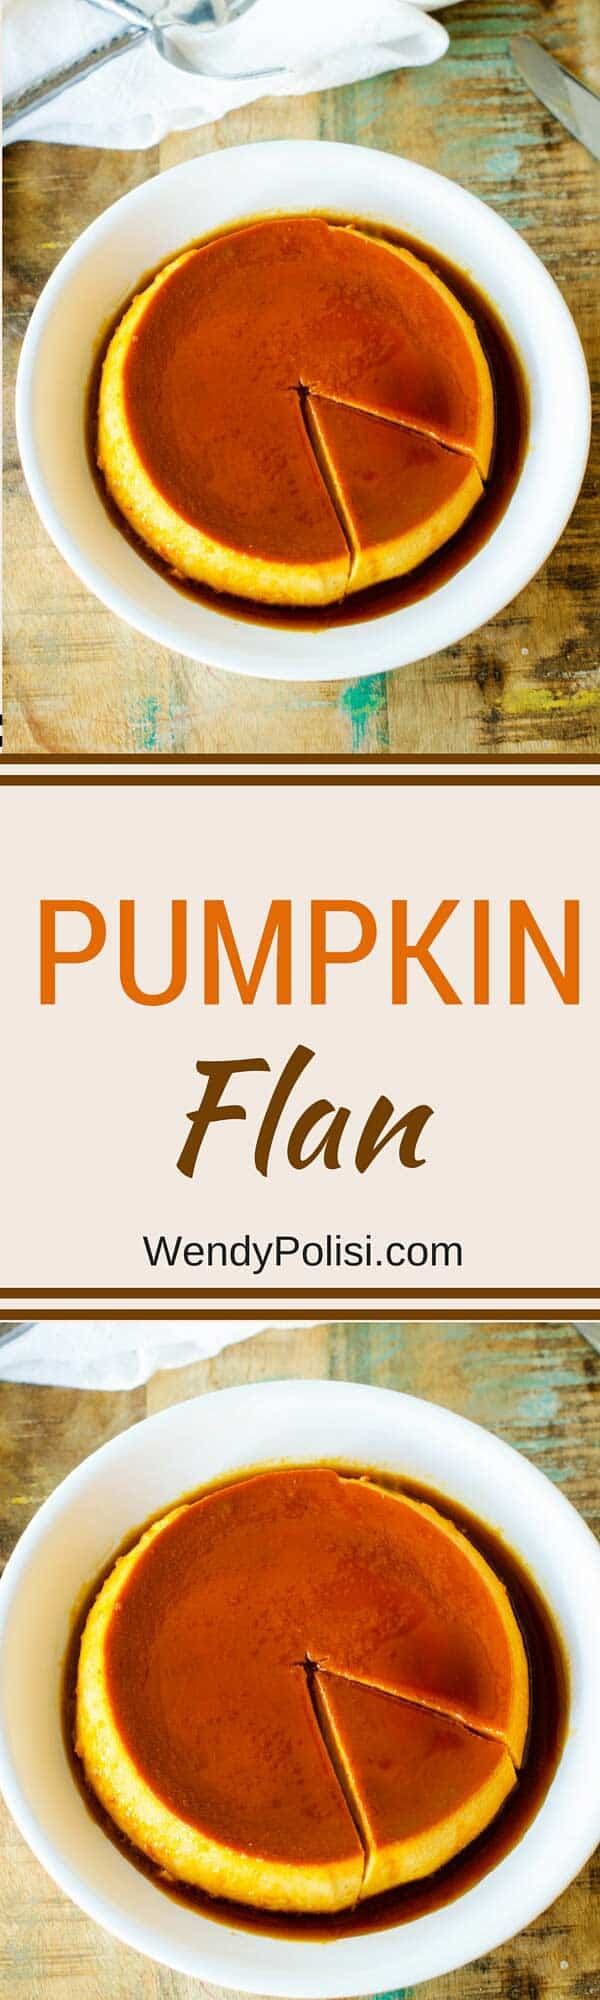 This Pumpkin Flan recipe is a unique twist on a favorite classic.  With just six ingredients, this pumpkin dessert recipe will make your holiday table shine. #holidaydesserts